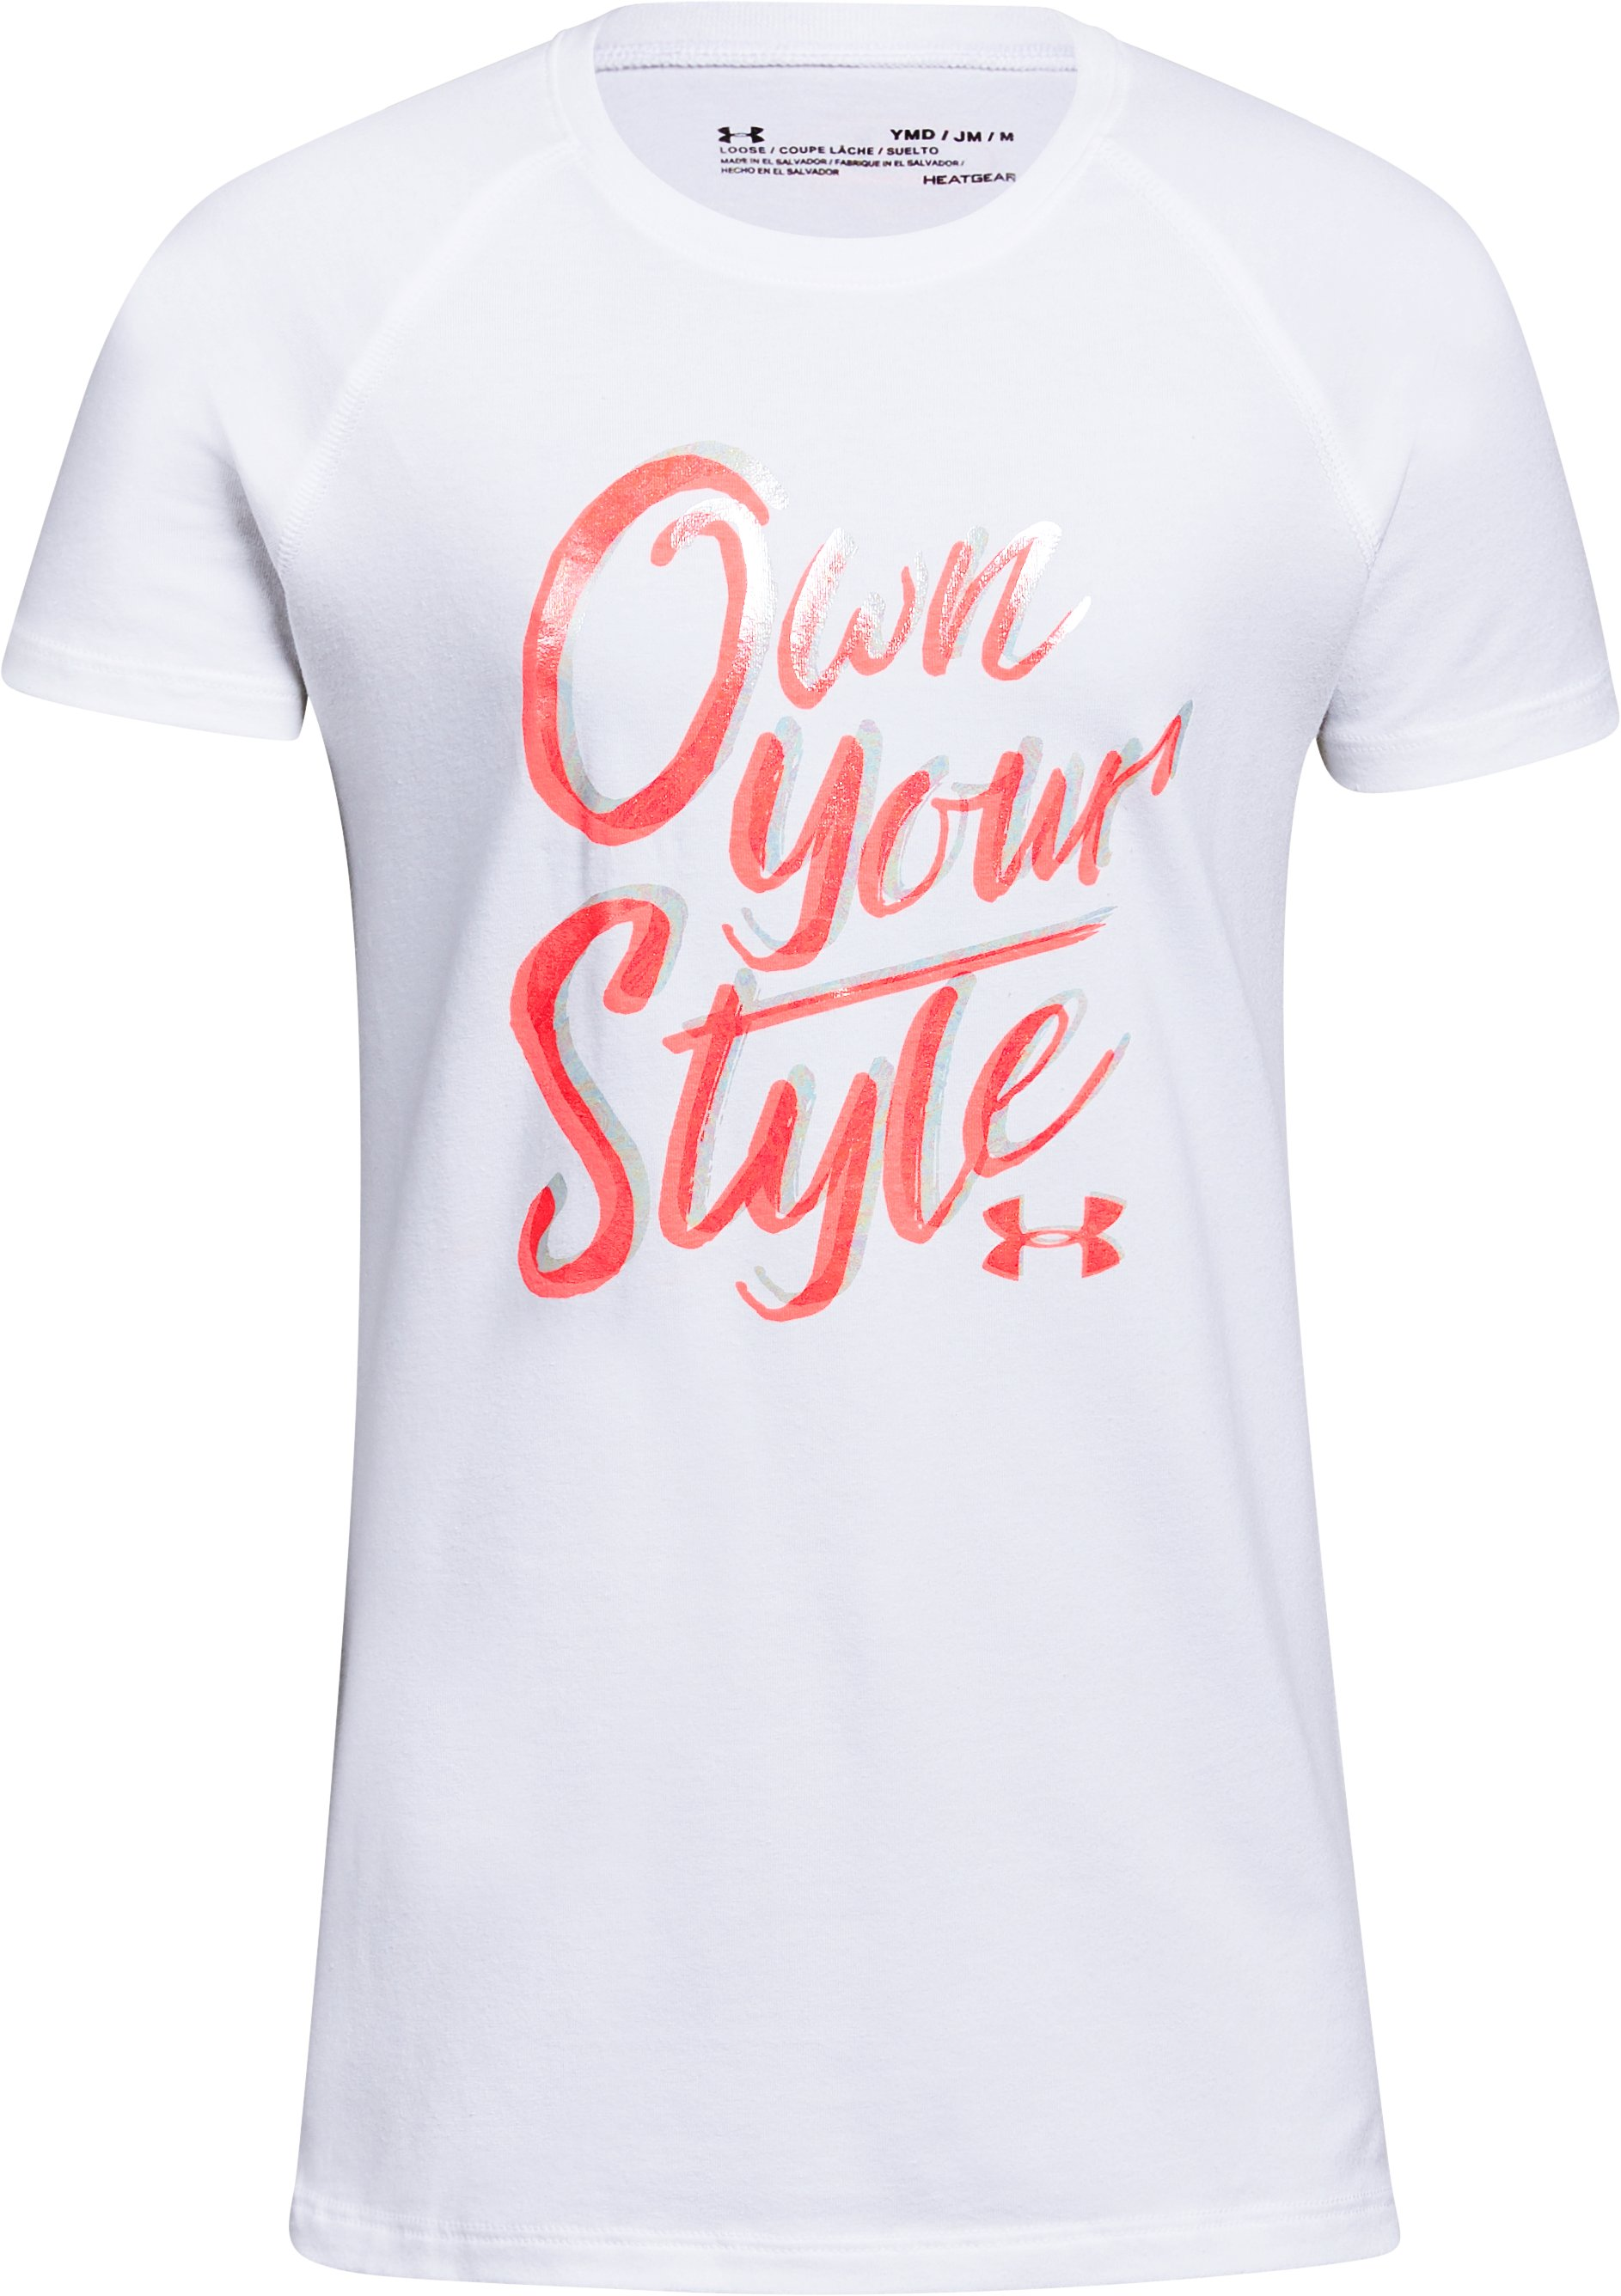 Girls' UA Own Your Style T-Shirt 2 Colors $15.00